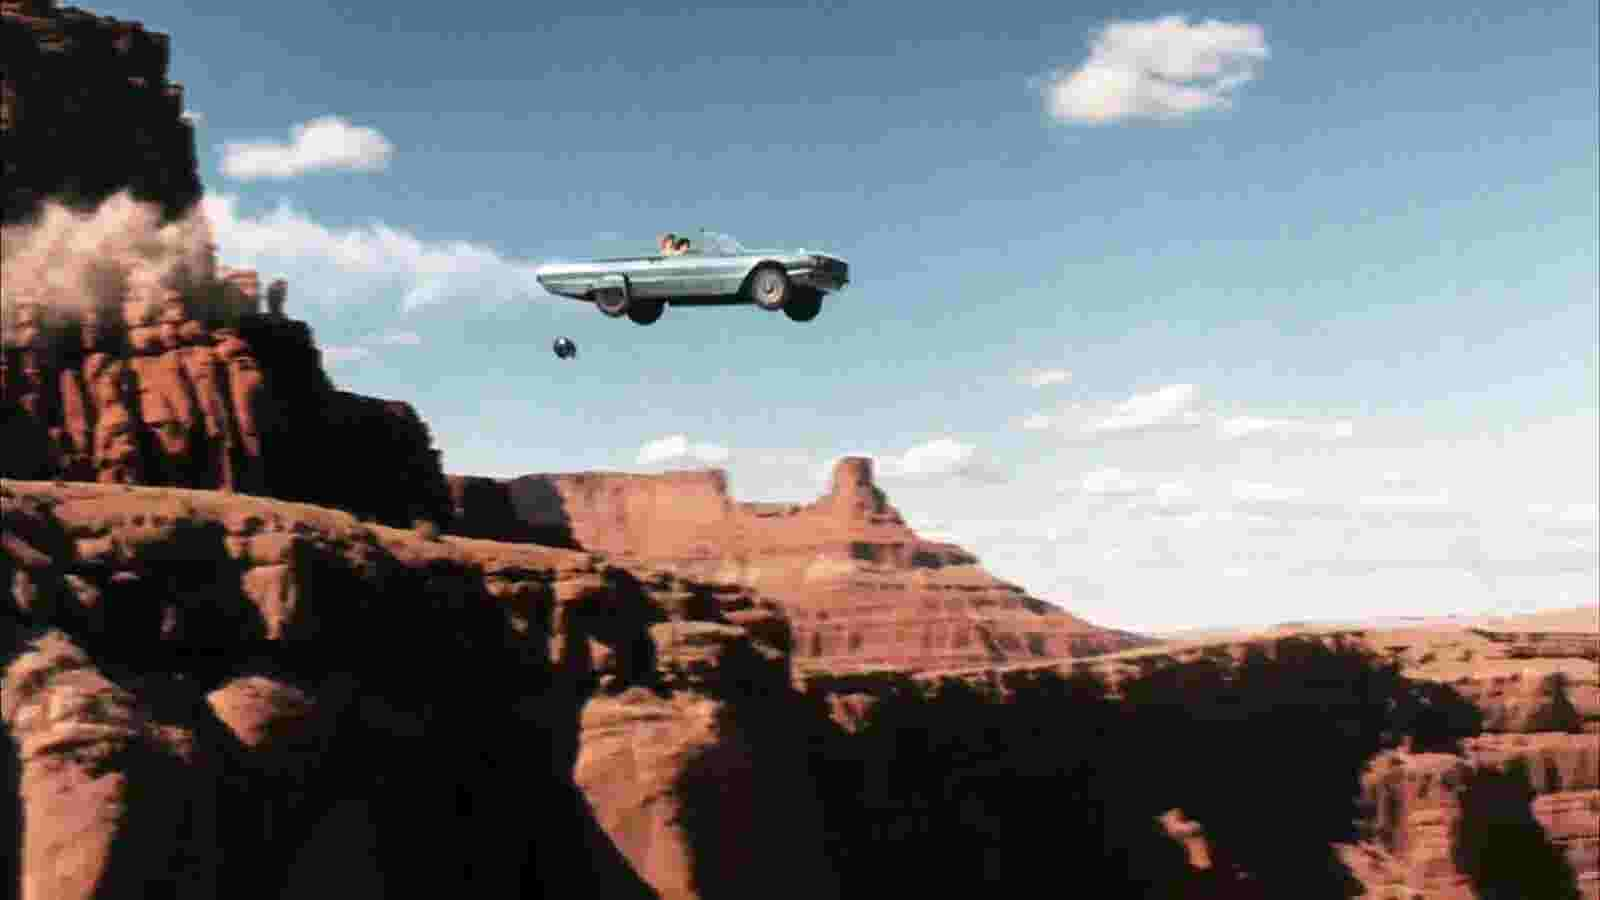 Movies, TV and stunts: The Grand Canyon in pop culture